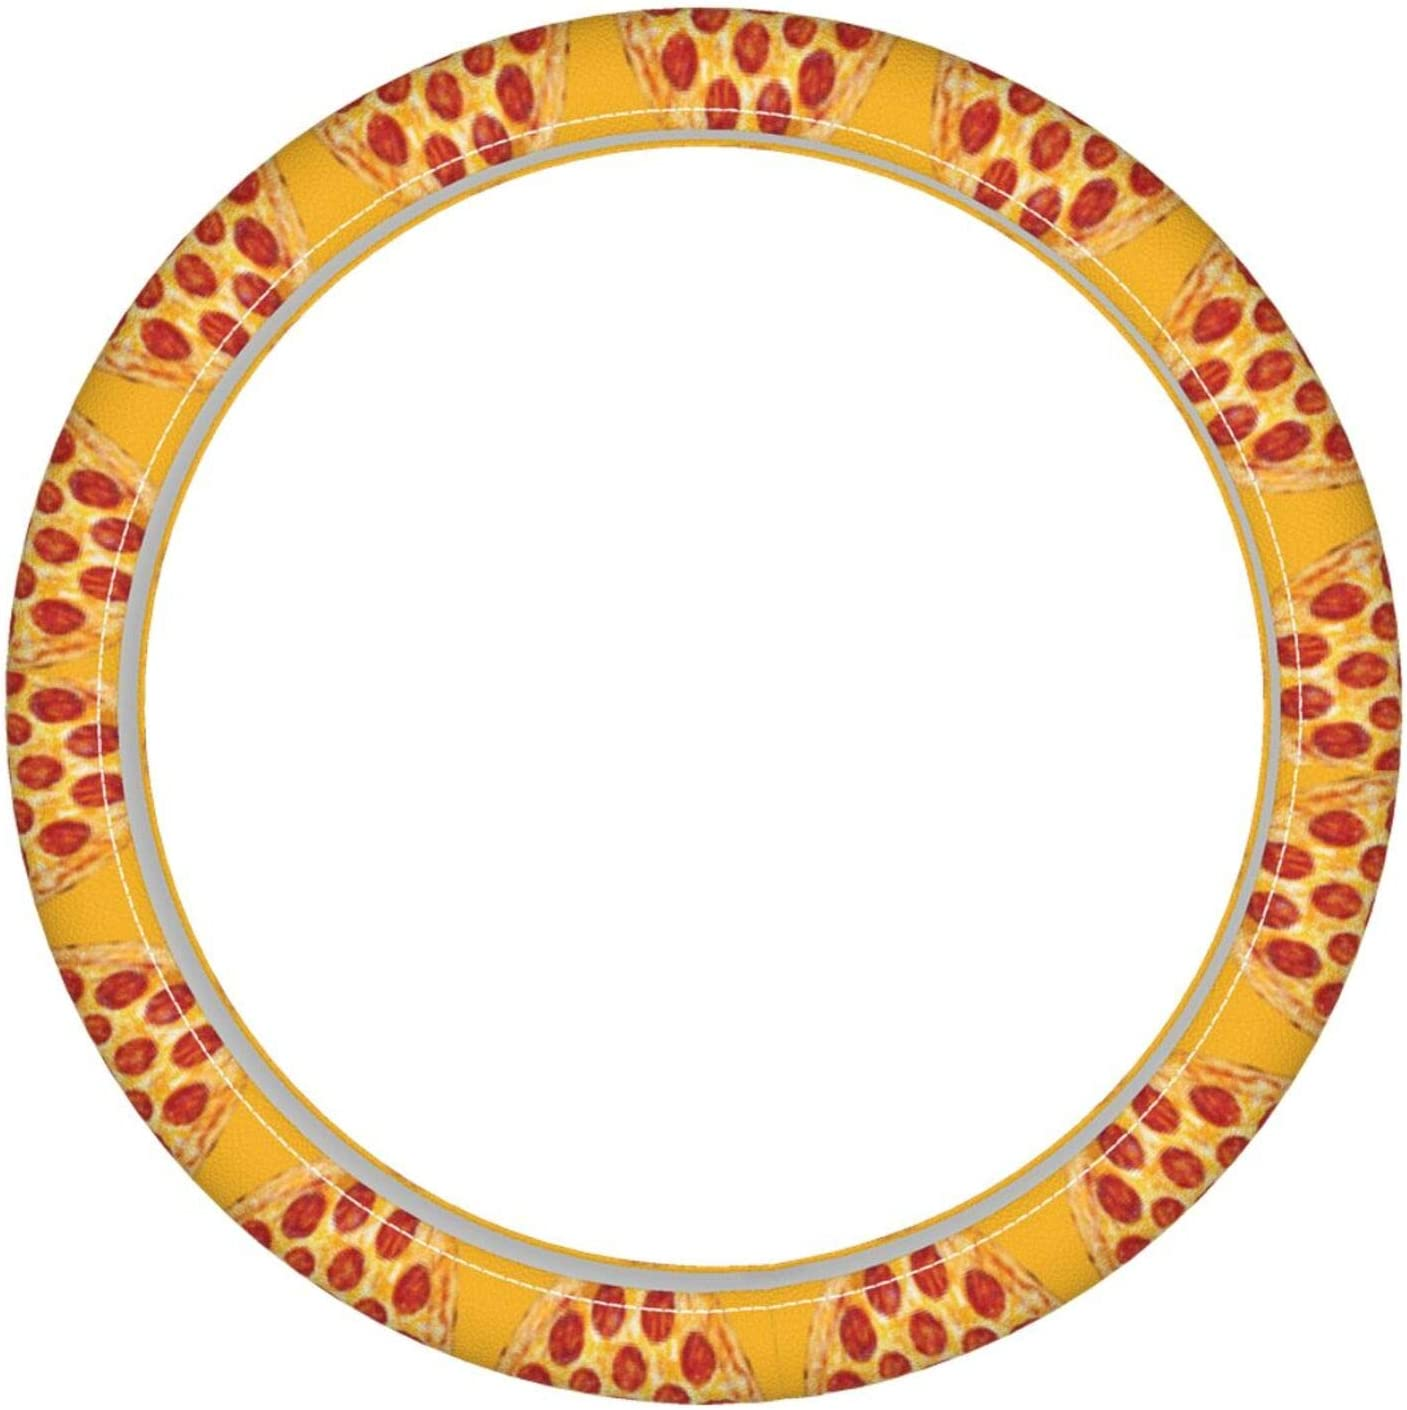 Zeyustge Pizza Microfiber Leather Cover OFFicial shop Breathabl 2021 spring and summer new Steering Wheel